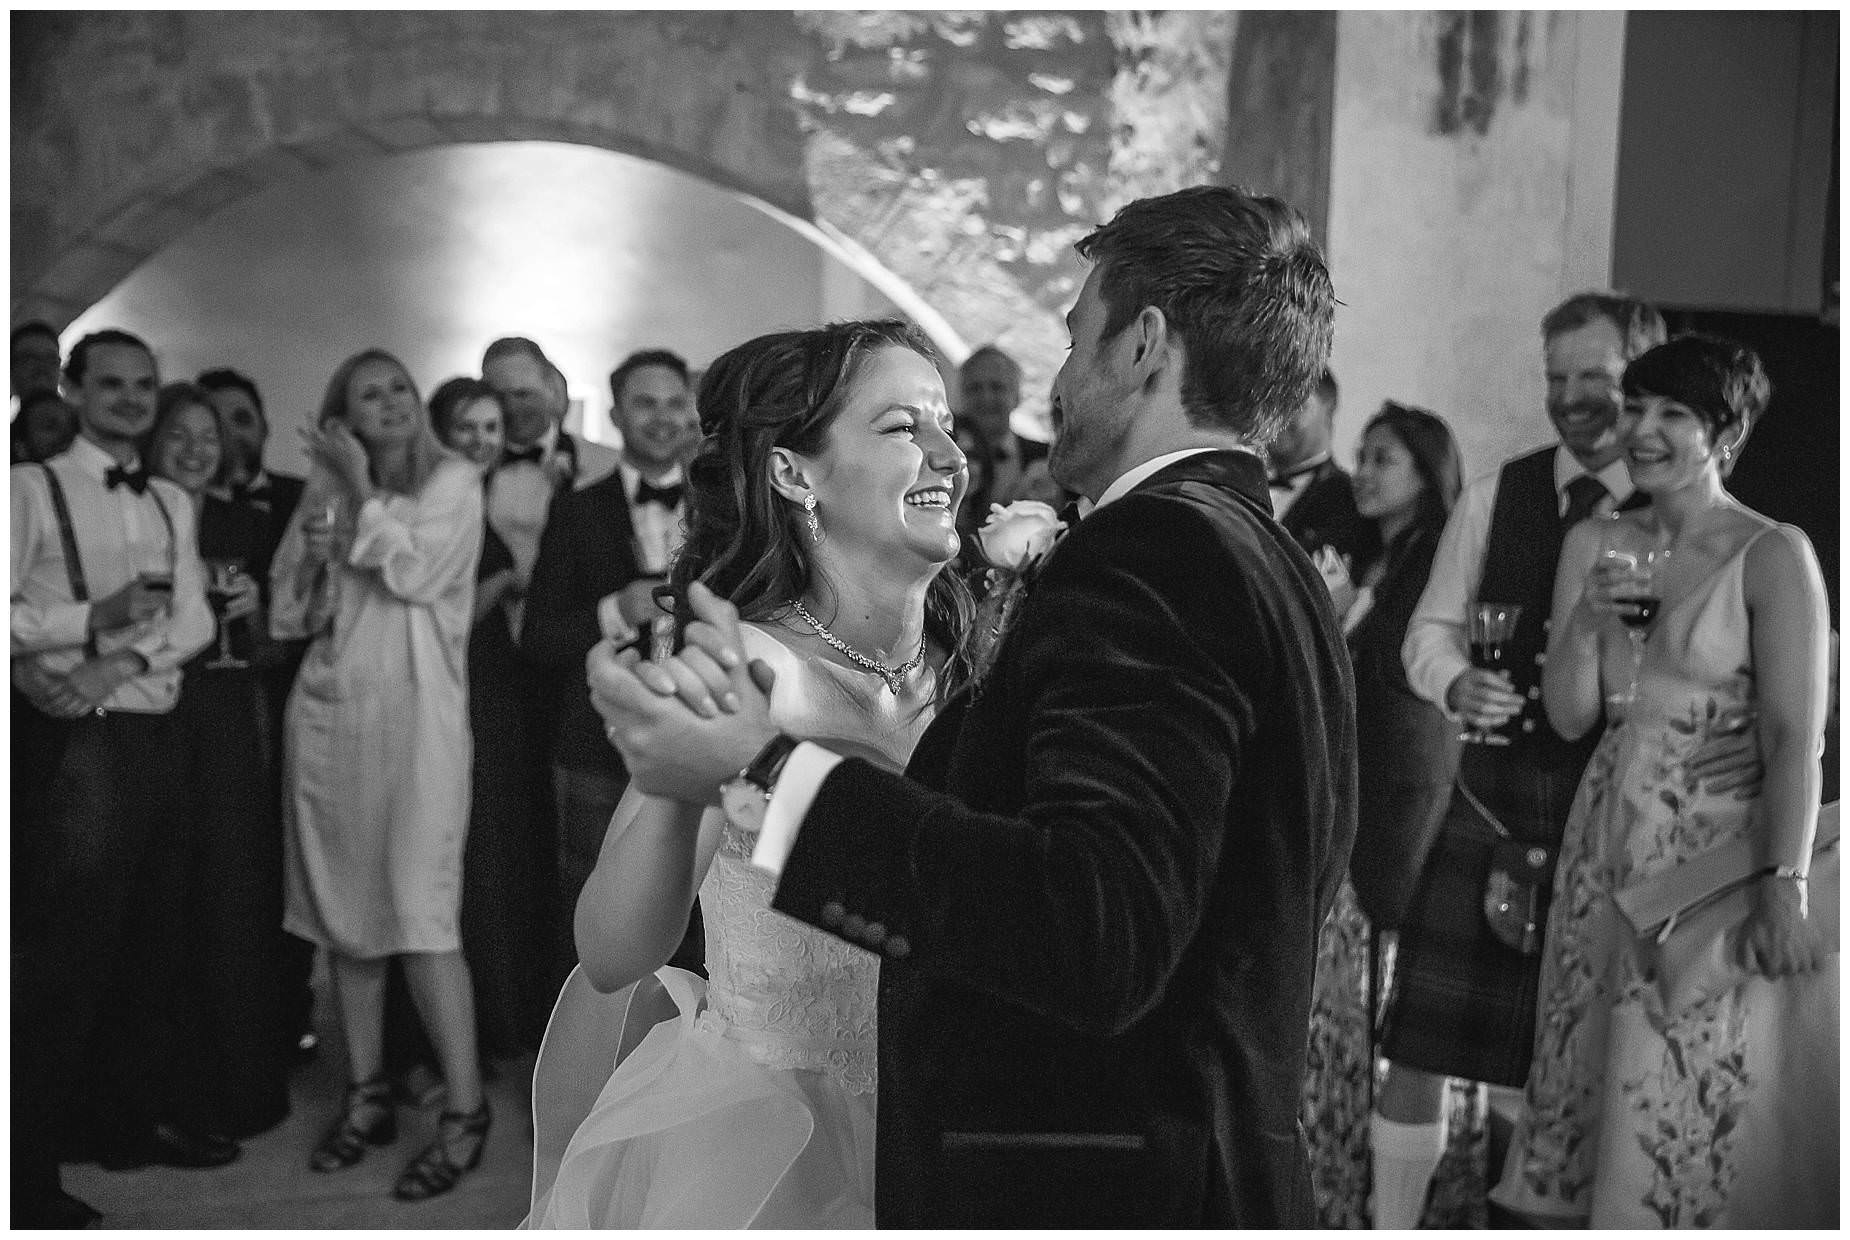 dancing at provence weddings